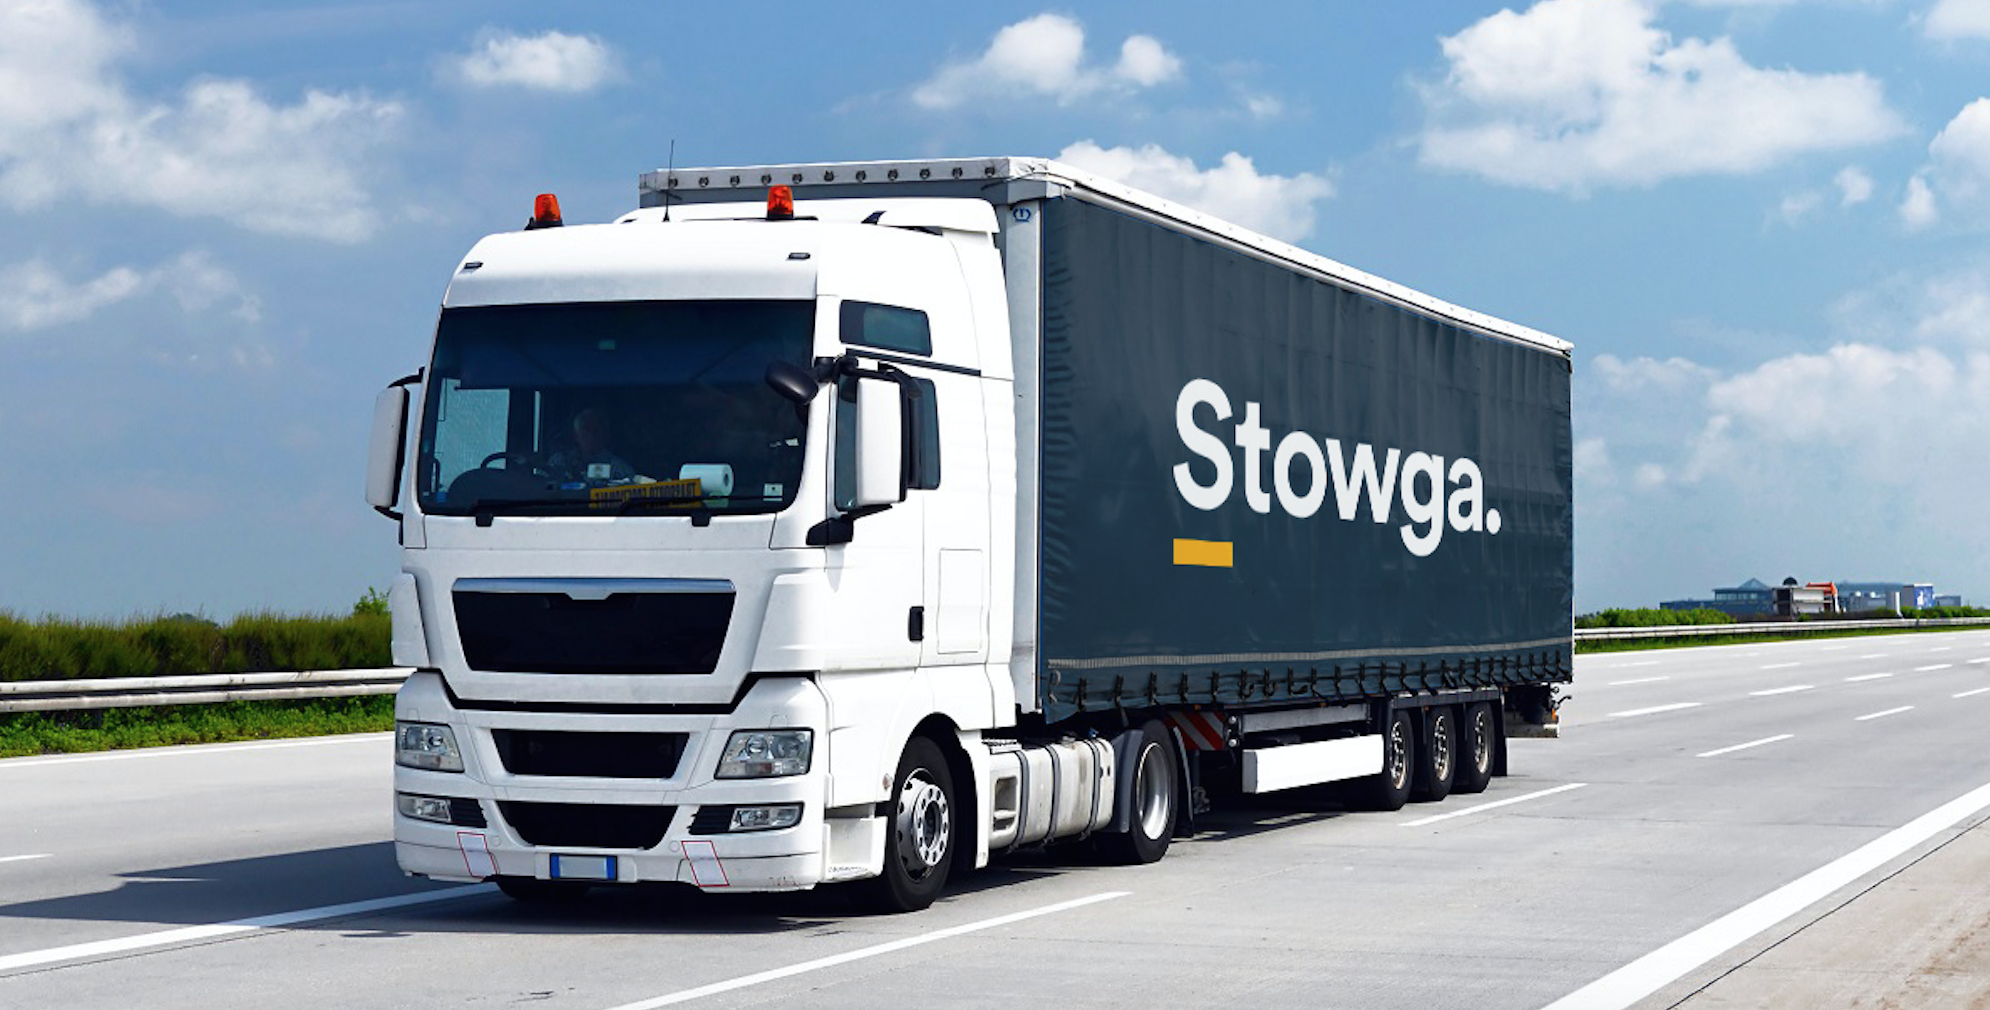 Stowga Truck cropped